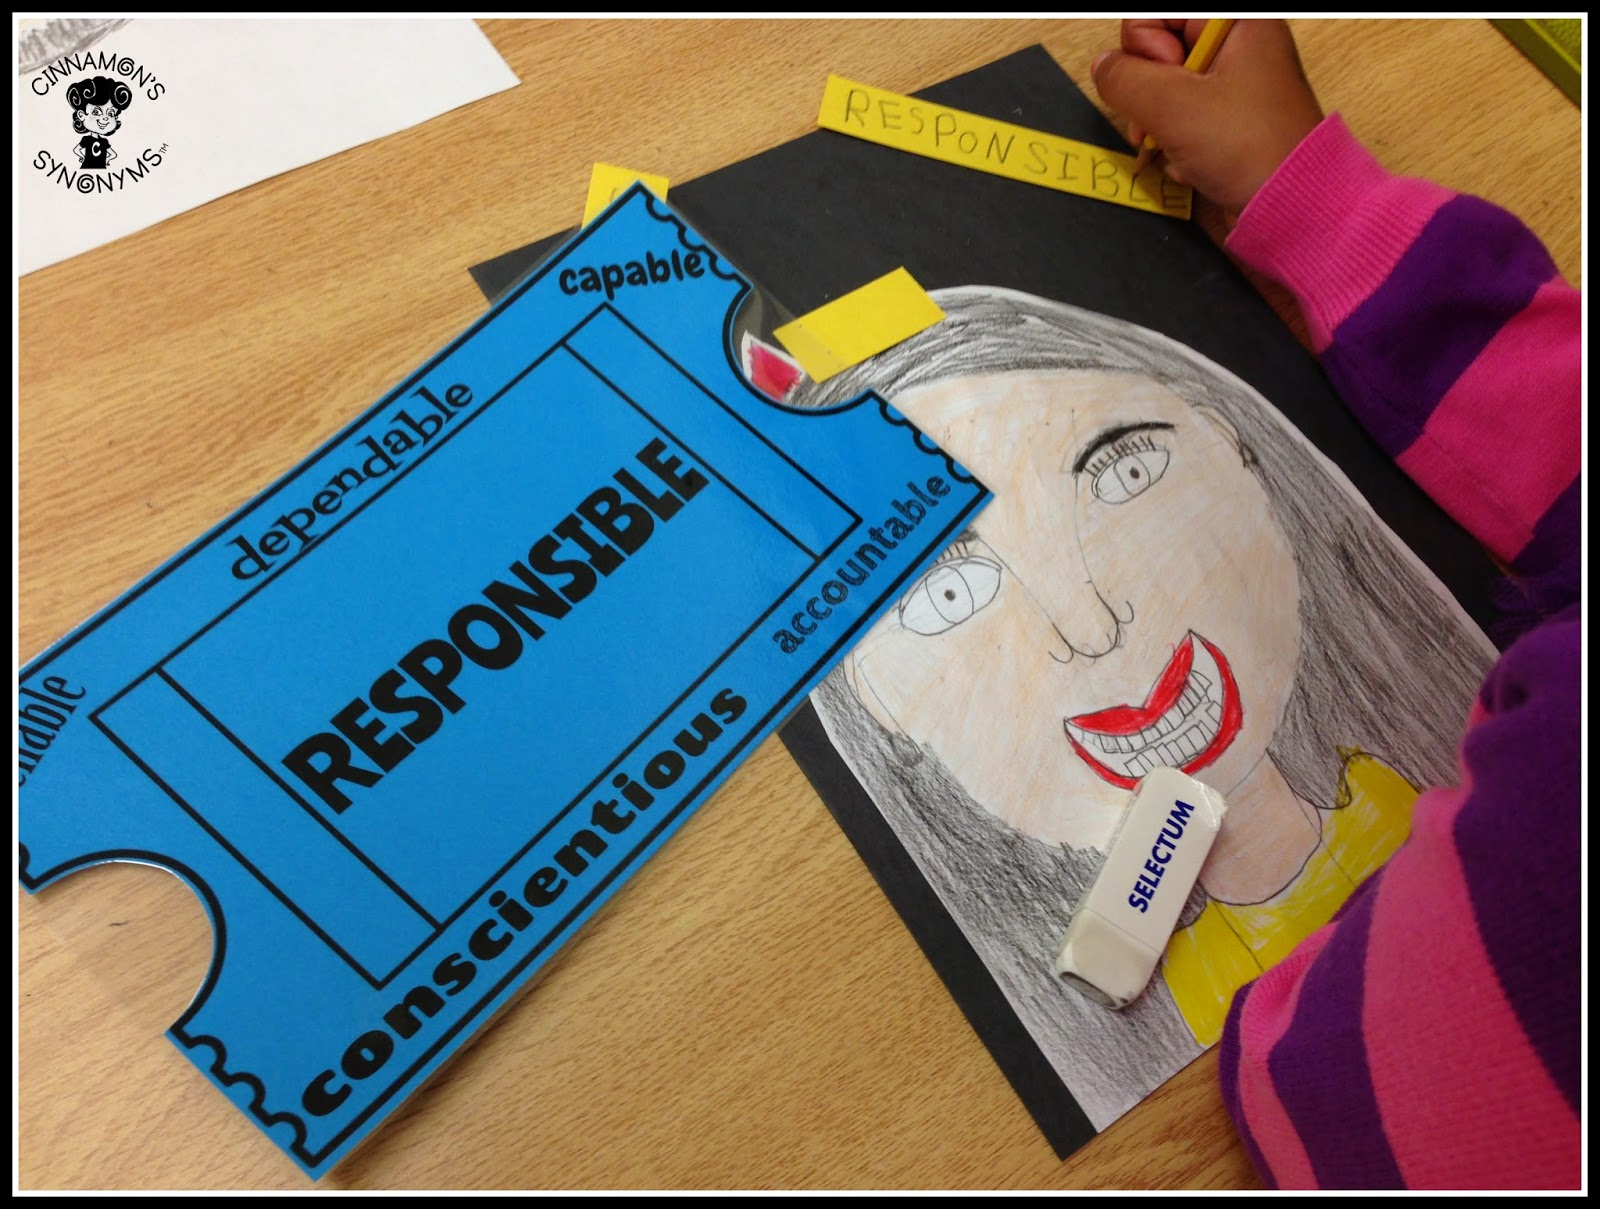 Cinnamon's Synonyms: Drawing Self Portraits and Building Positive